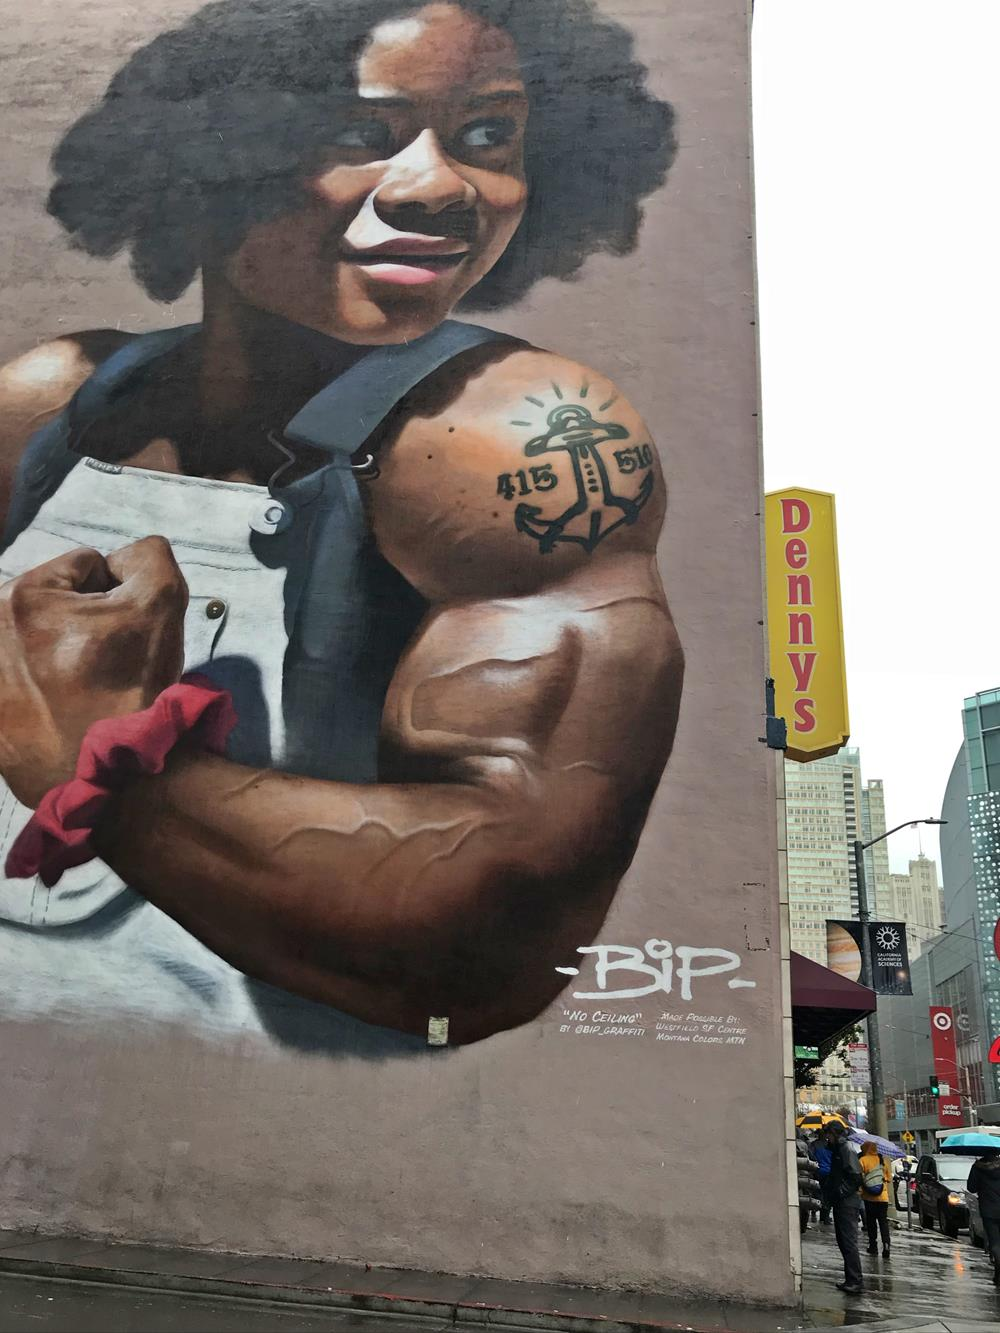 Five story image of a young girl with unnaturally large muscles, seen on a San Francisco street art tour